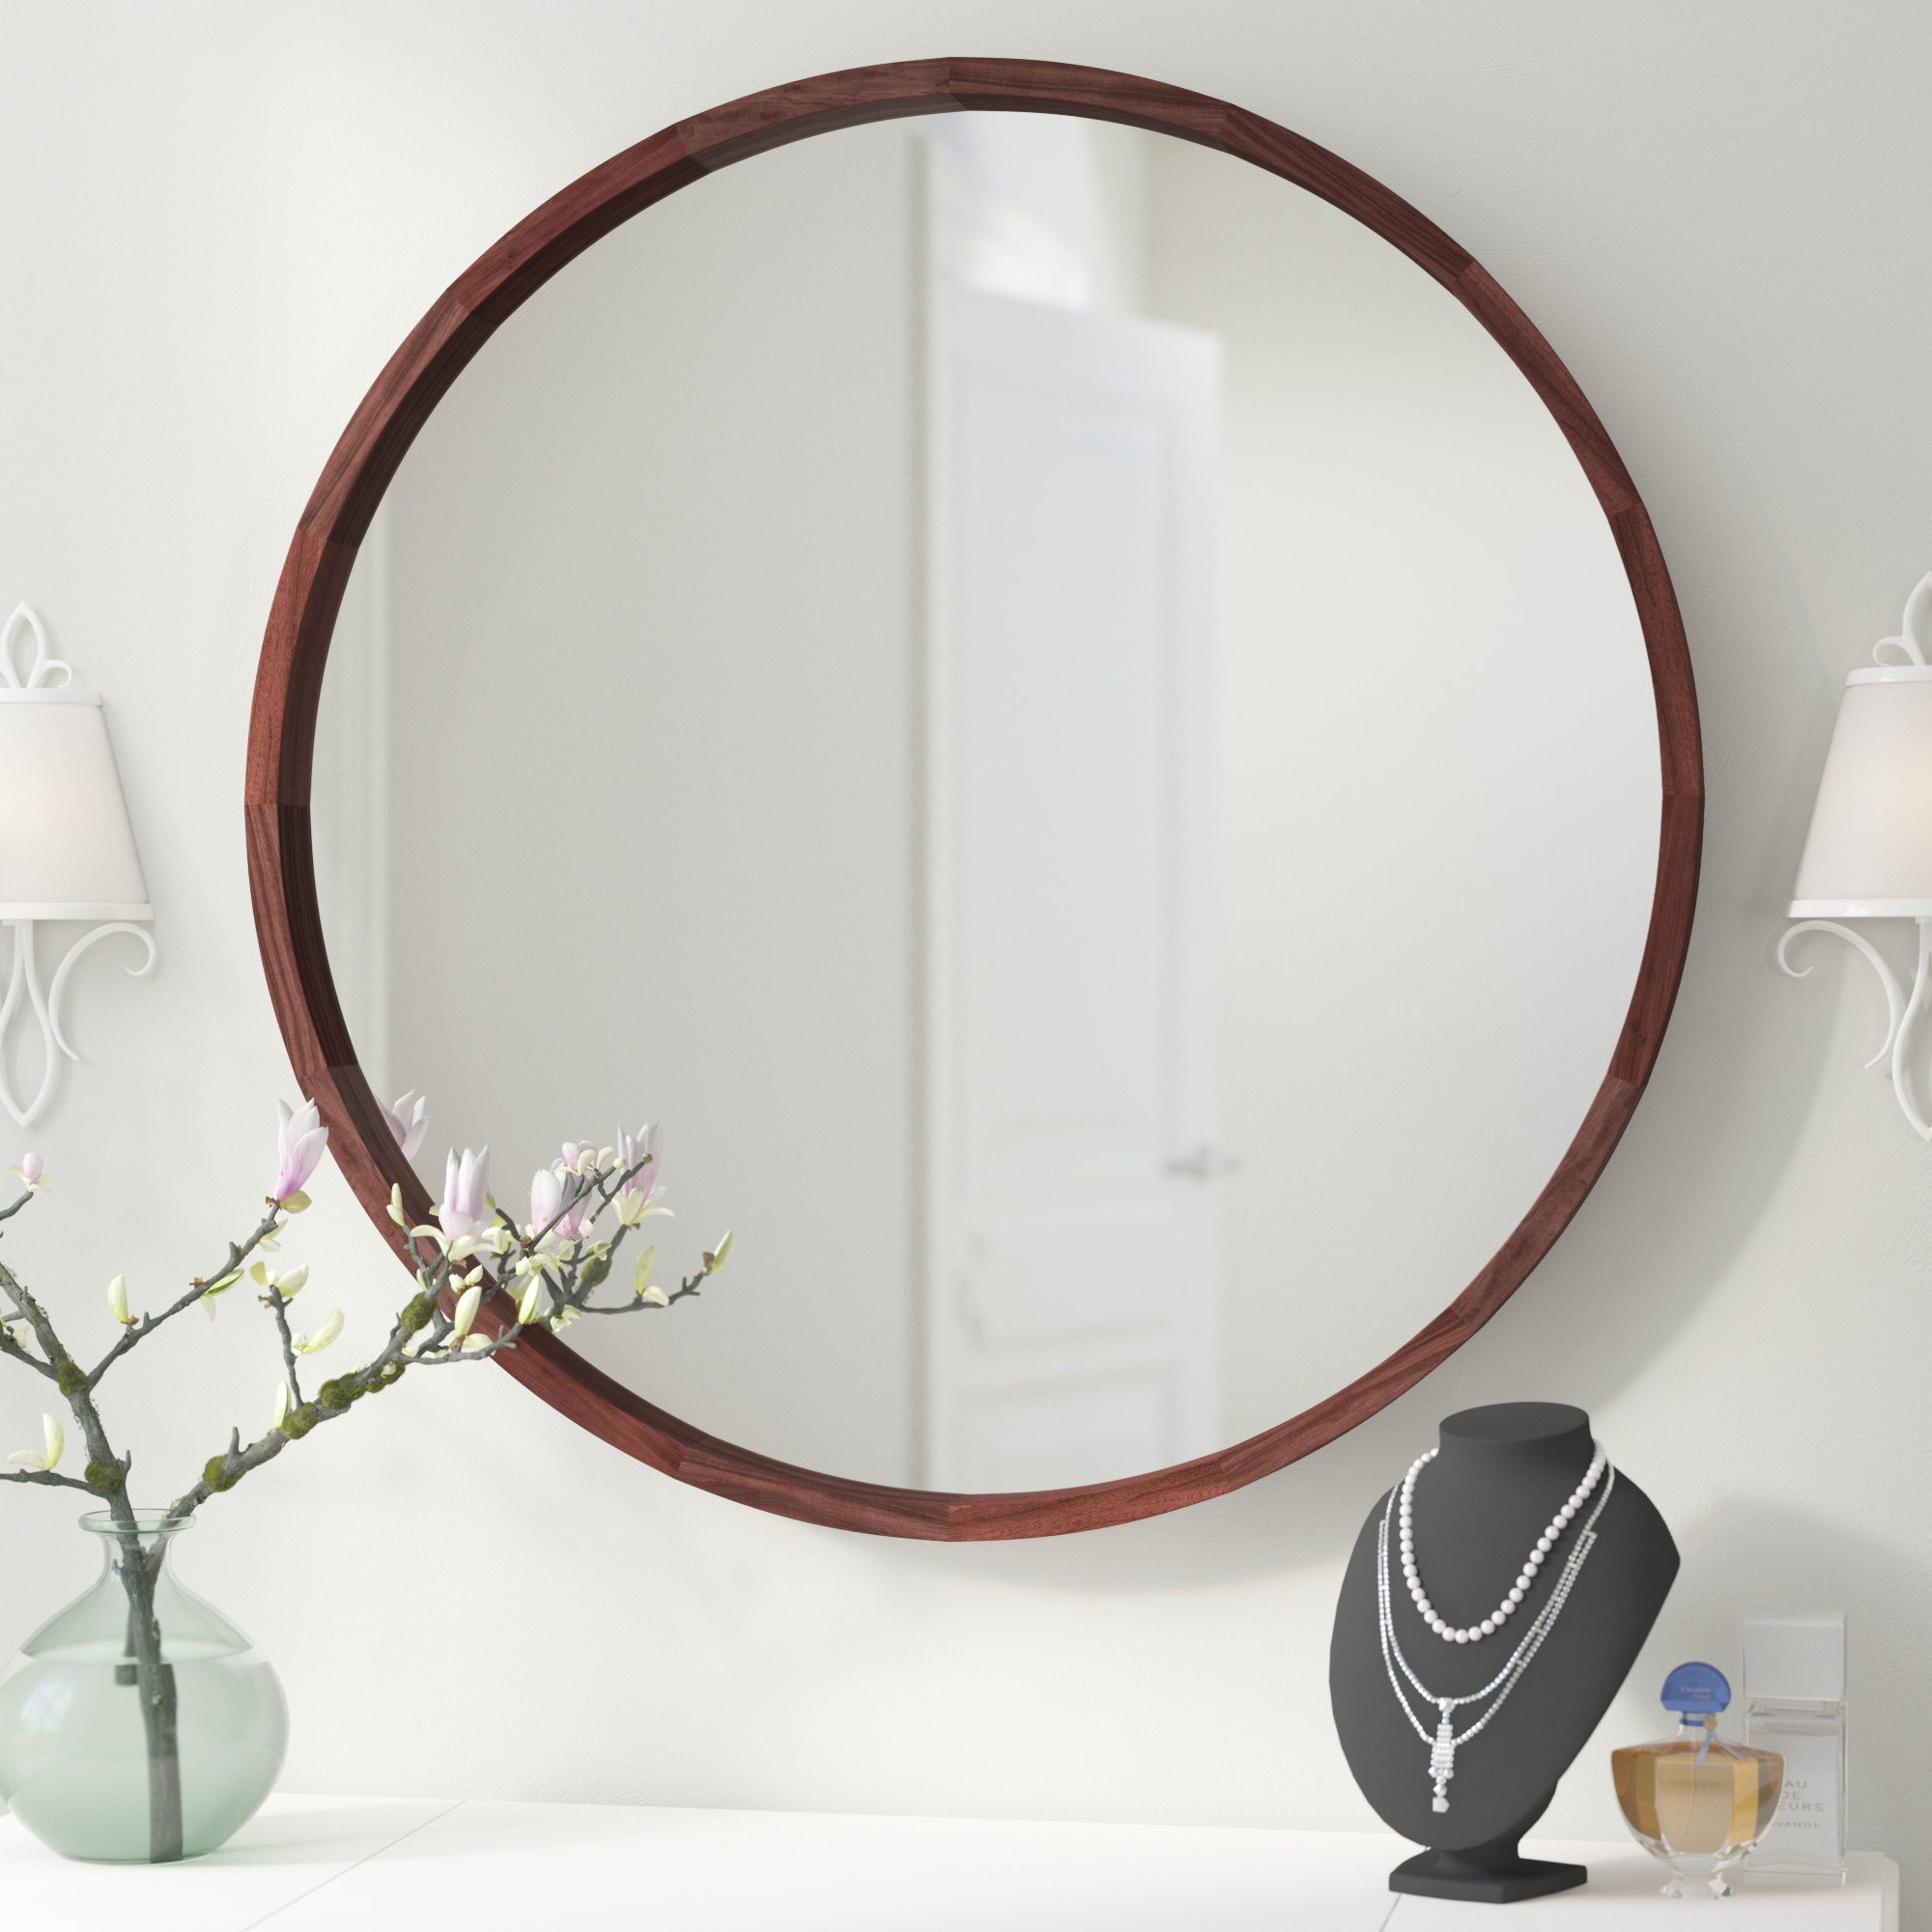 Loftis Modern & Contemporary Accent Wall Mirror & Reviews Intended For Oval Metallic Accent Mirrors (Image 12 of 20)